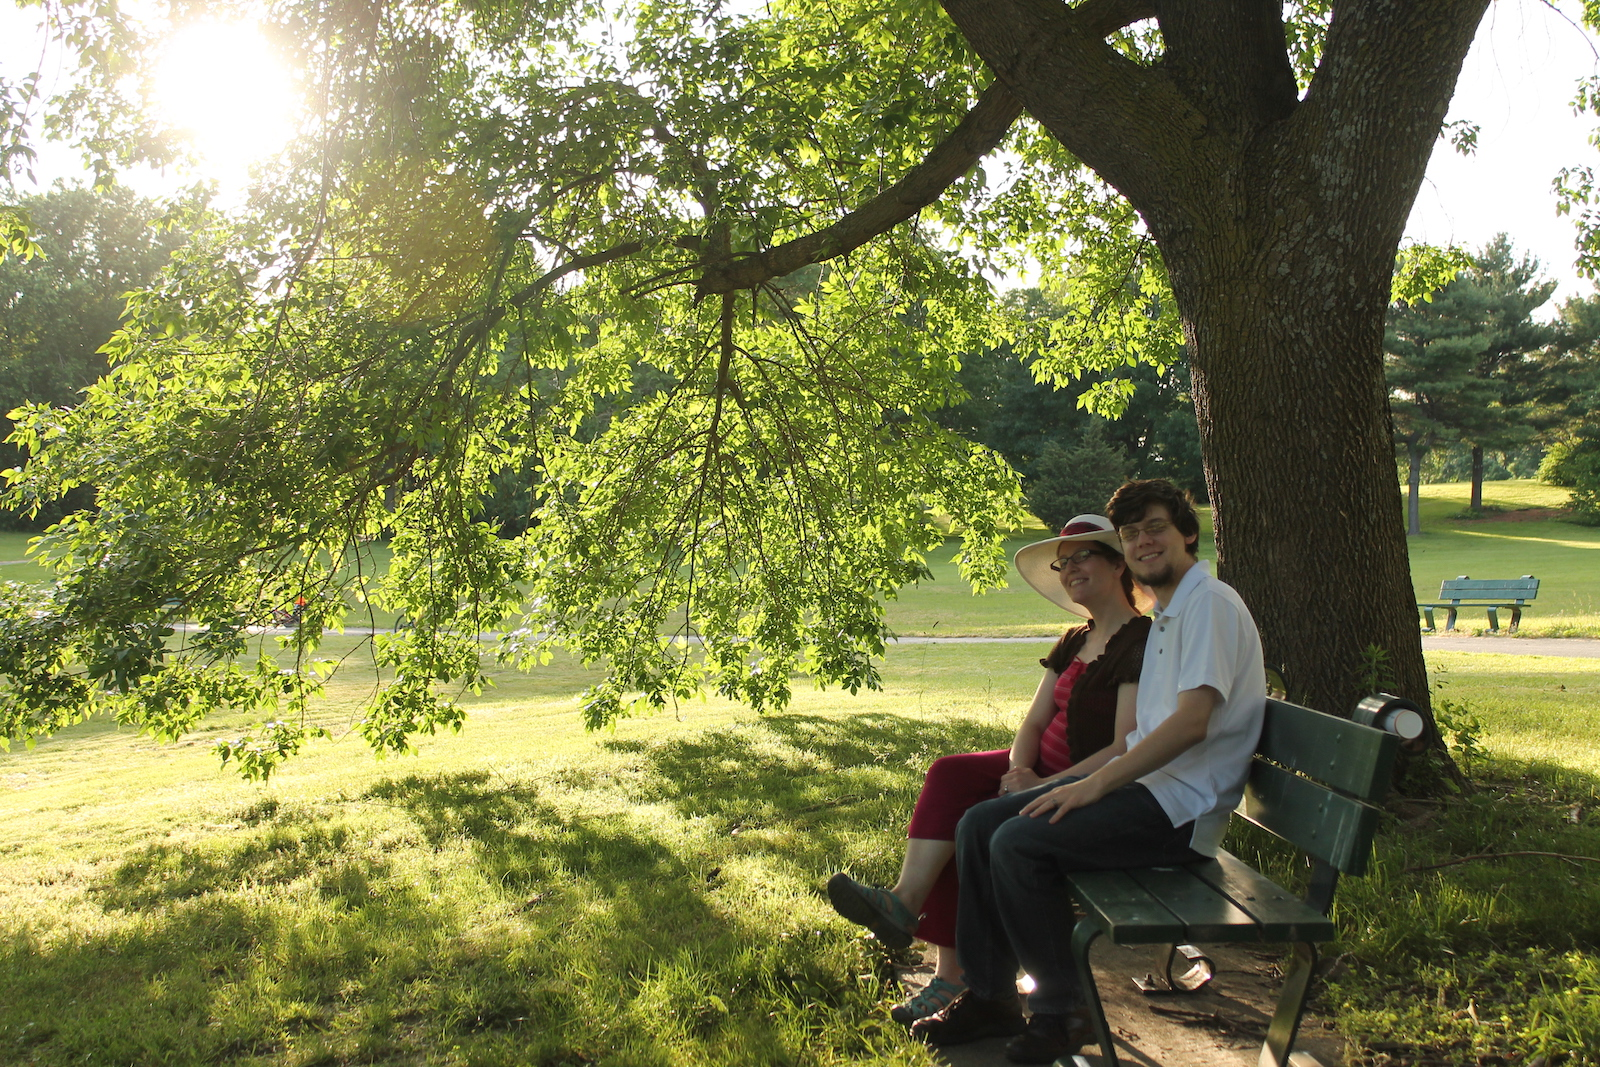 couple_on_bench